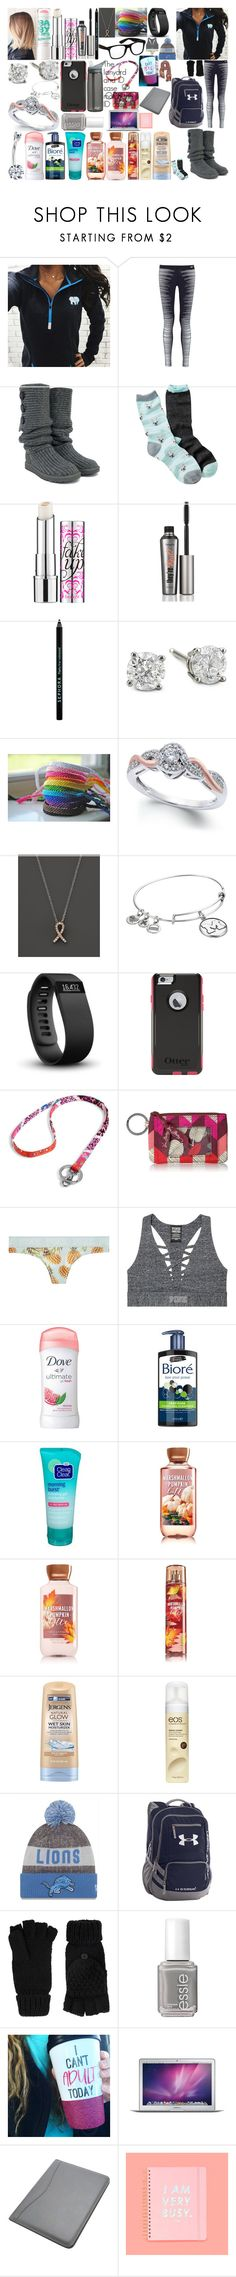 """10/13/17"" by itwirl123 ❤ liked on Polyvore featuring Ivory Ella, NIKE, UGG Australia, Free Press, Maybelline, Benefit, Sephora Collection, Anastasia, Bloomingdale's and Alex and Ani"